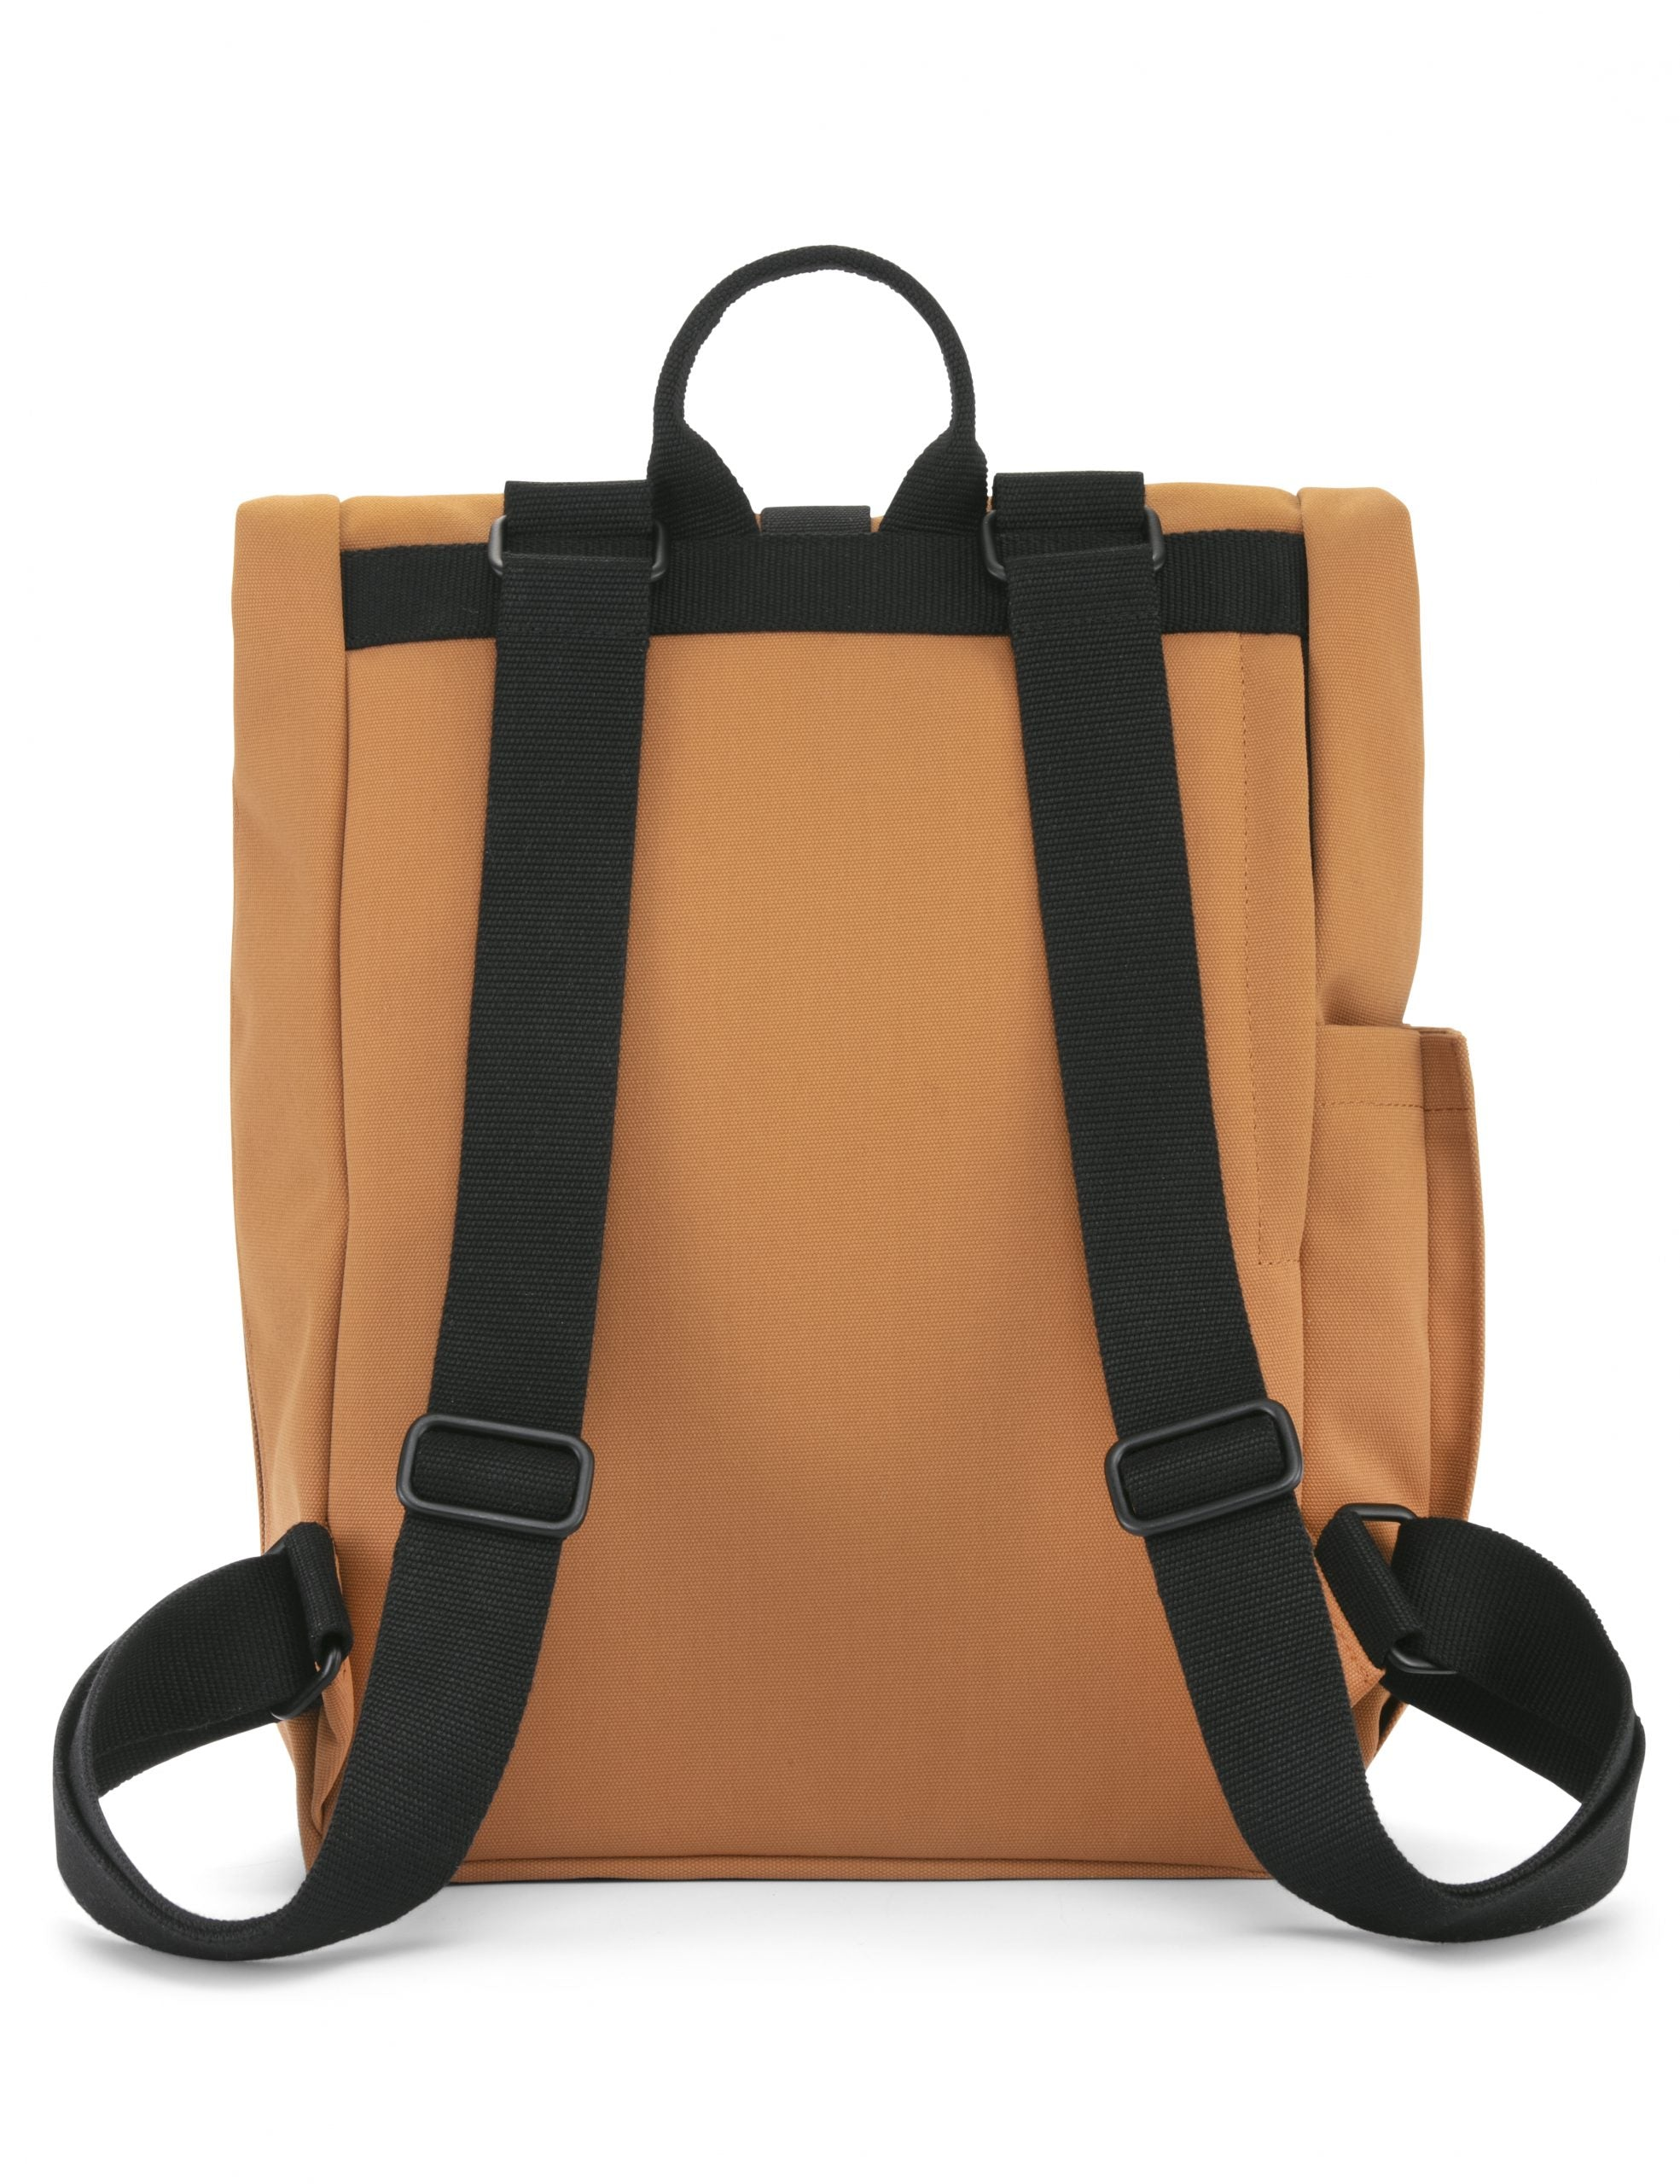 Vegan canvas bag - The Seed